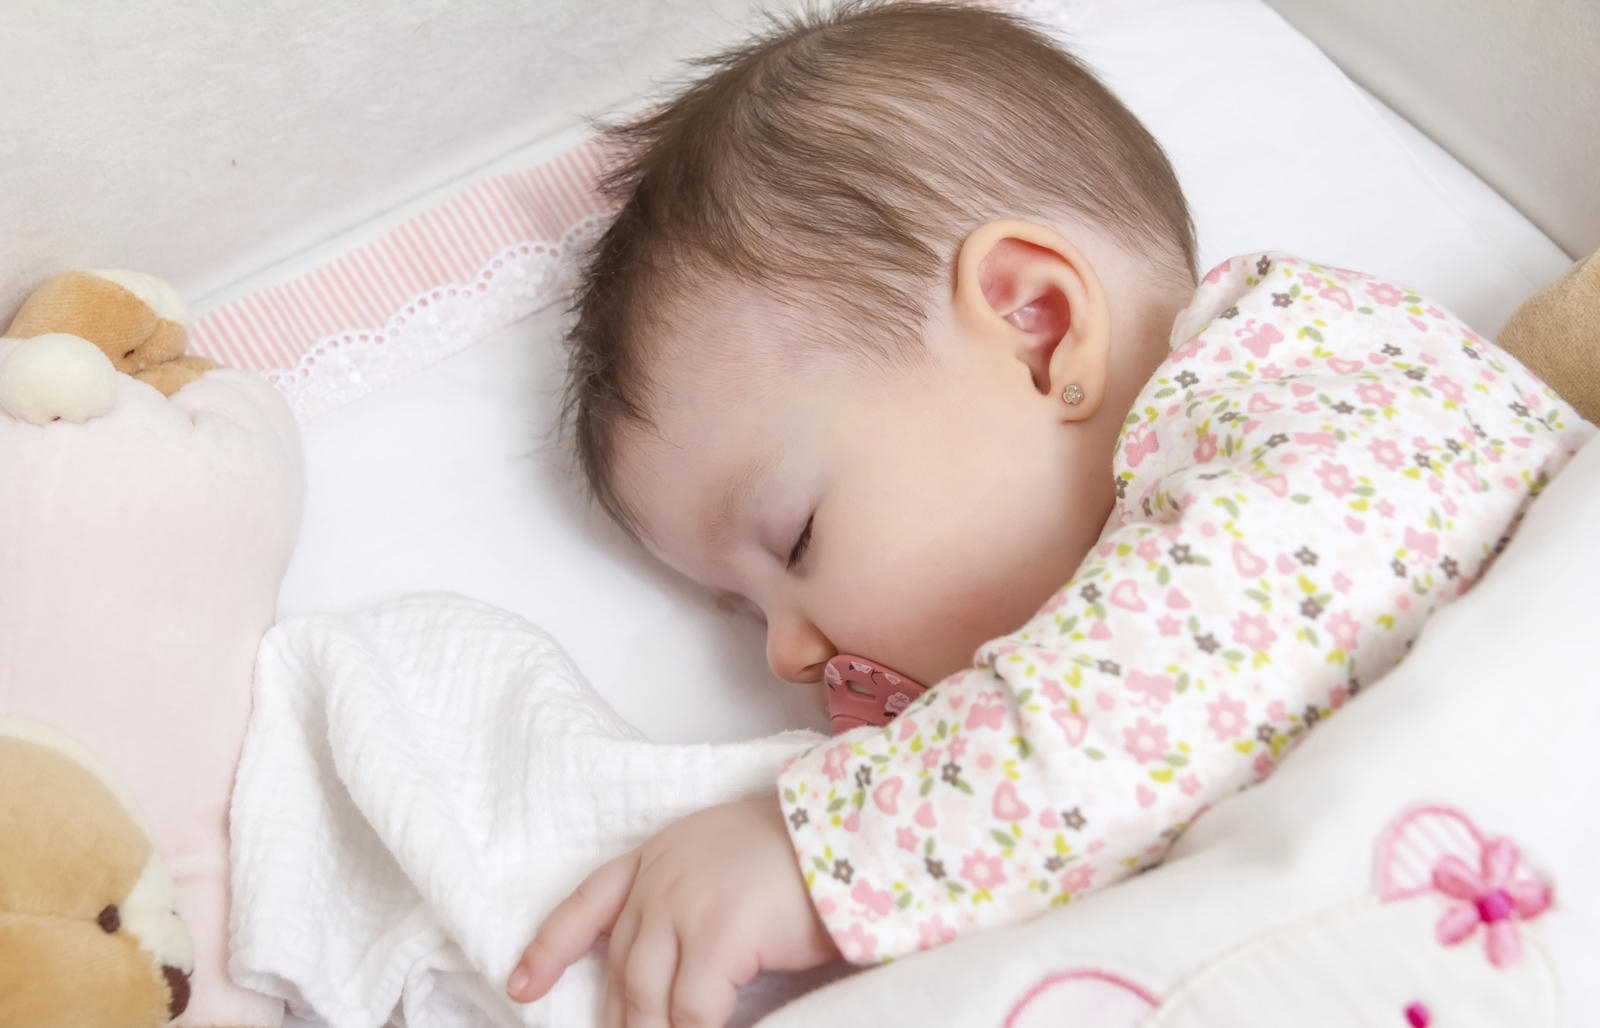 What Can Baby Sleep In Next To Bed 6 Tips For Getting Your Newborn To Sleep In A Cot